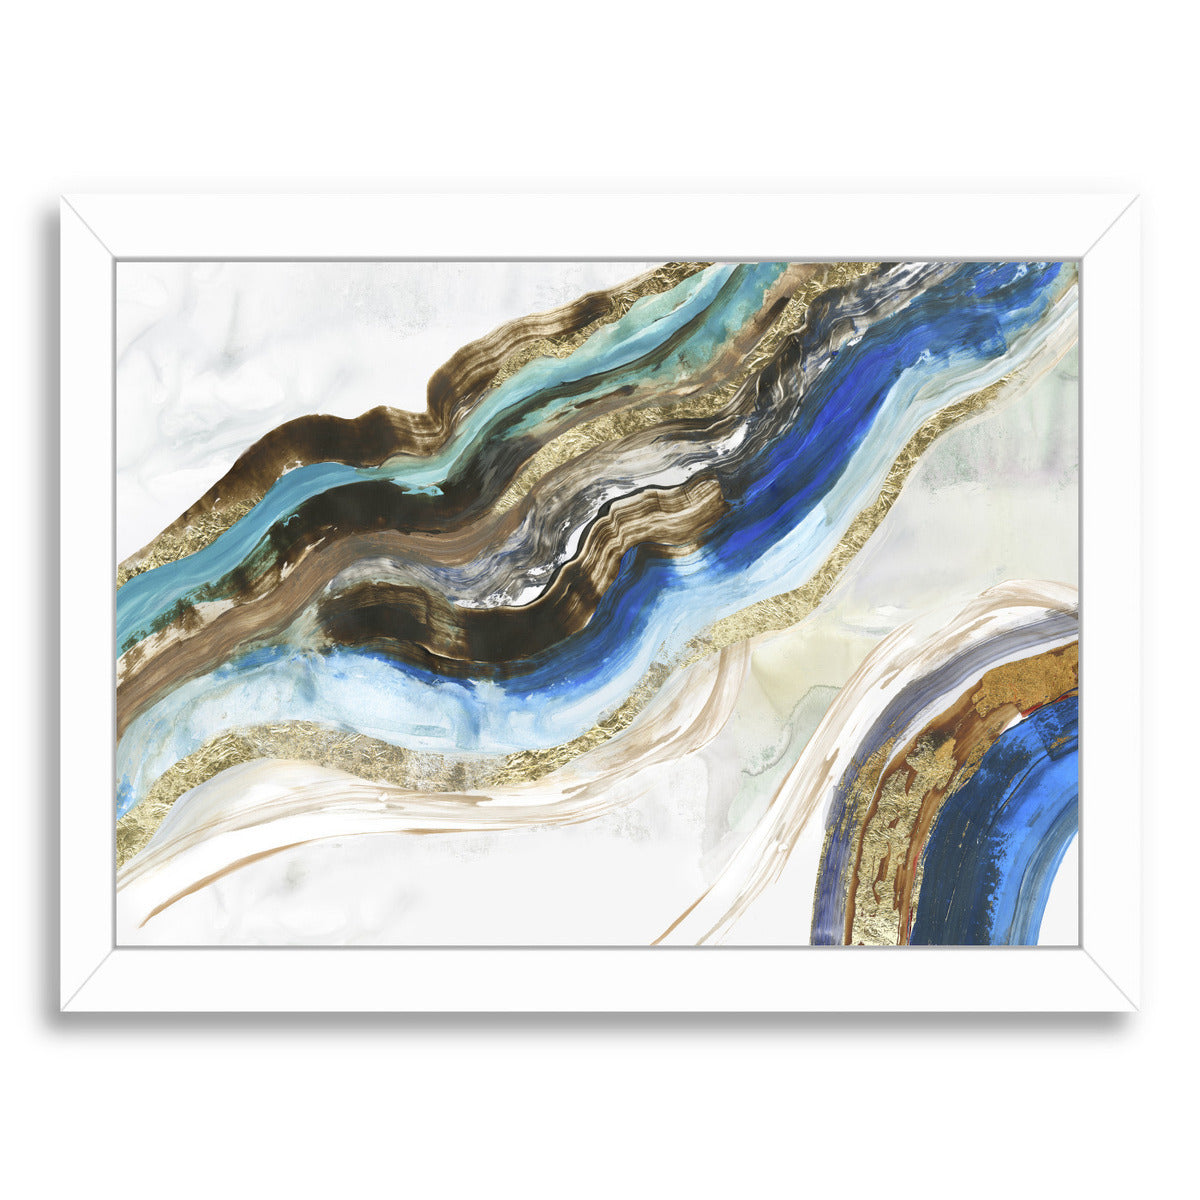 Crystalized Iii by PI Creative Art Framed Print - Wall Art - Americanflat